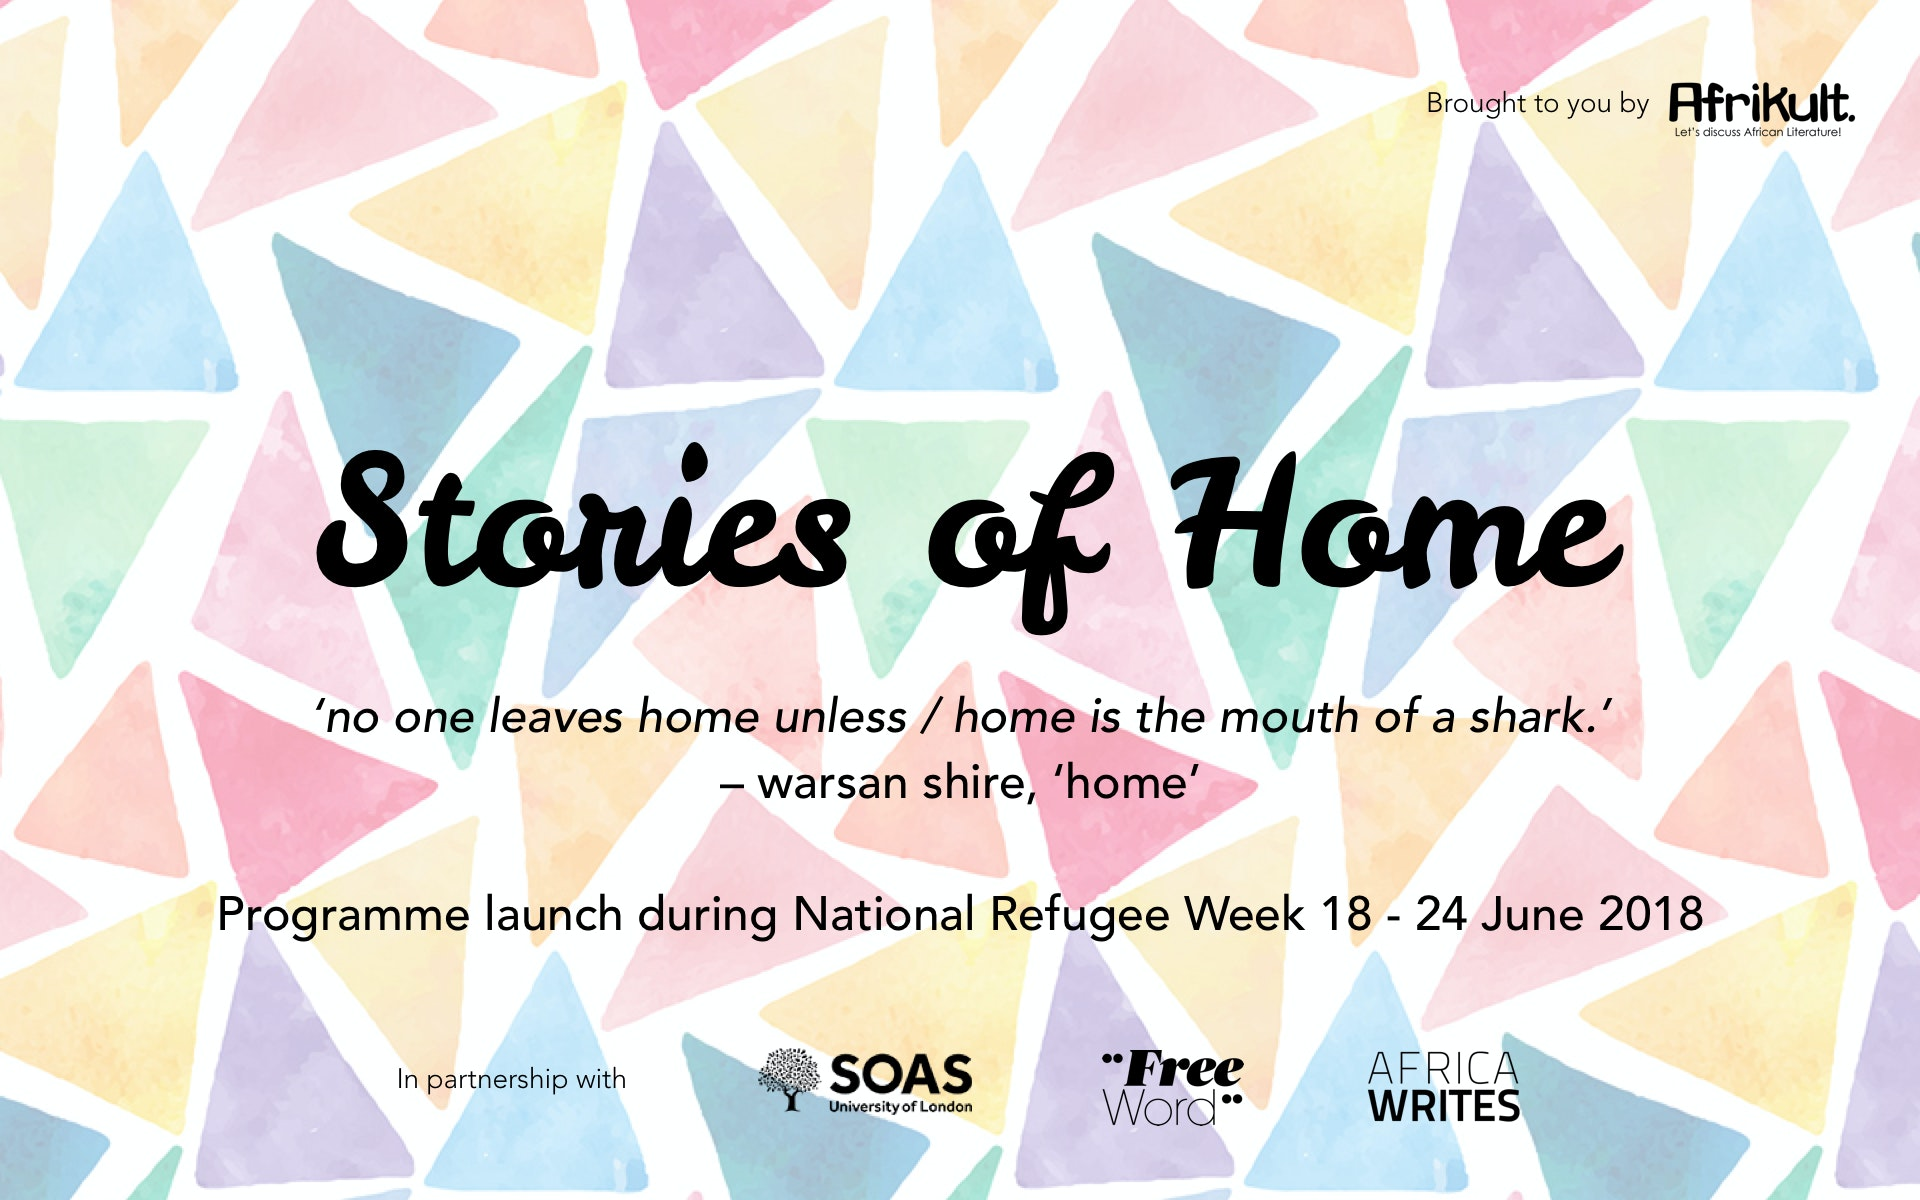 Support 'Stories of Home' refugee creative writing programme